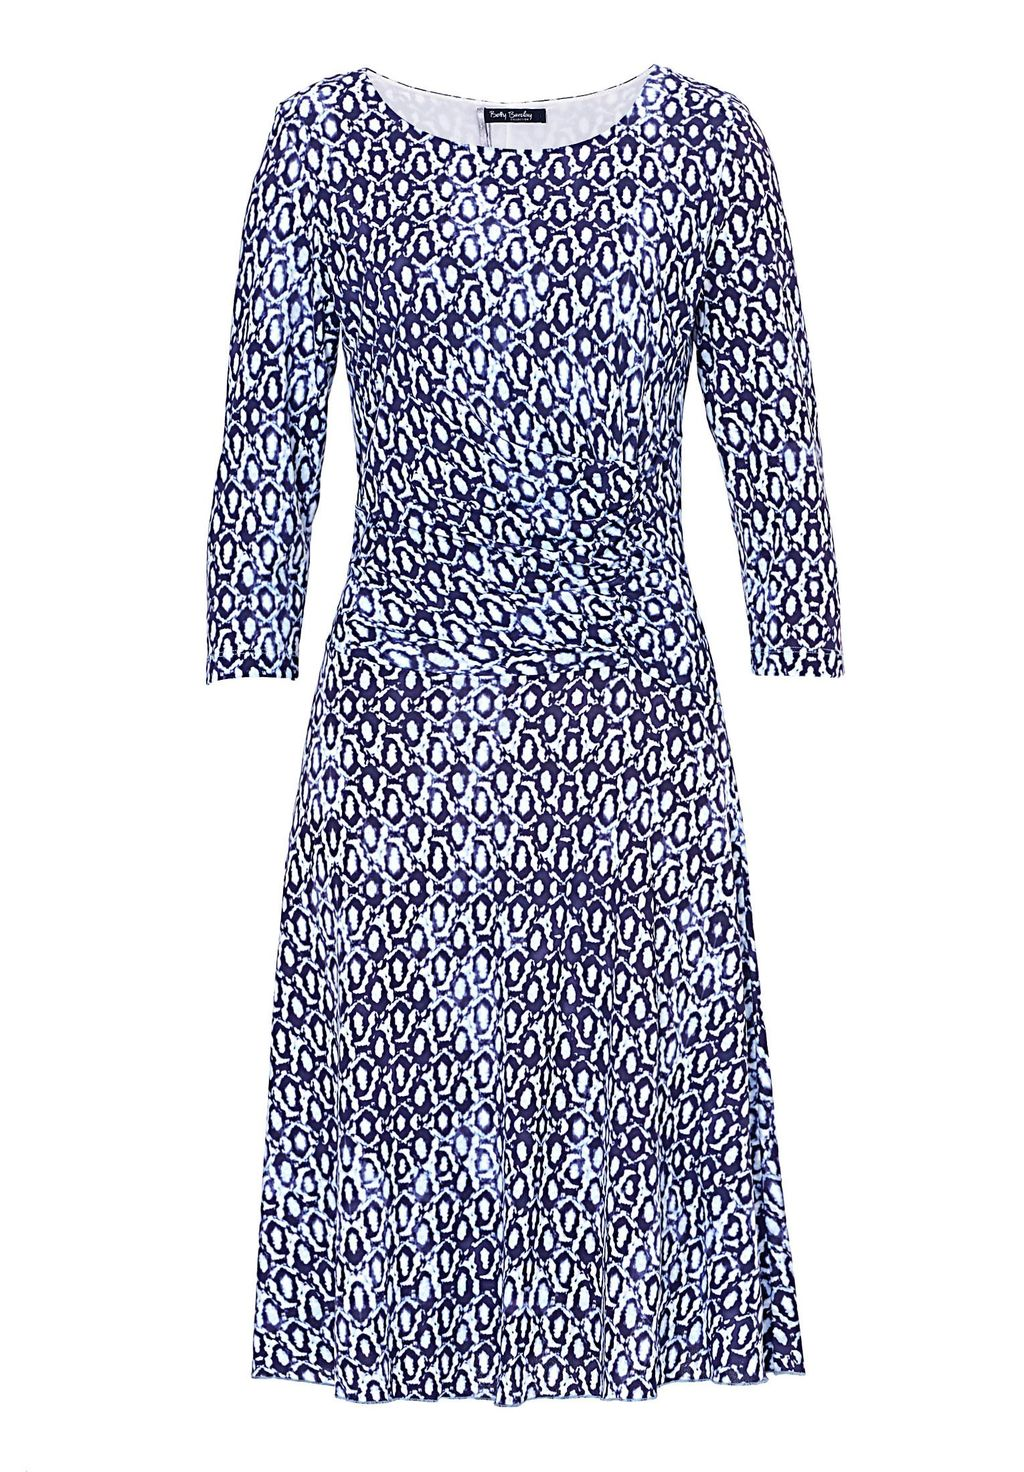 Printed Jersey Dress, Blue Multi - style: shift; neckline: round neck; secondary colour: white; predominant colour: navy; occasions: evening; length: just above the knee; fit: soft a-line; fibres: nylon - 100%; sleeve length: 3/4 length; sleeve style: standard; pattern type: fabric; pattern: patterned/print; texture group: jersey - stretchy/drapey; season: s/s 2016; wardrobe: event